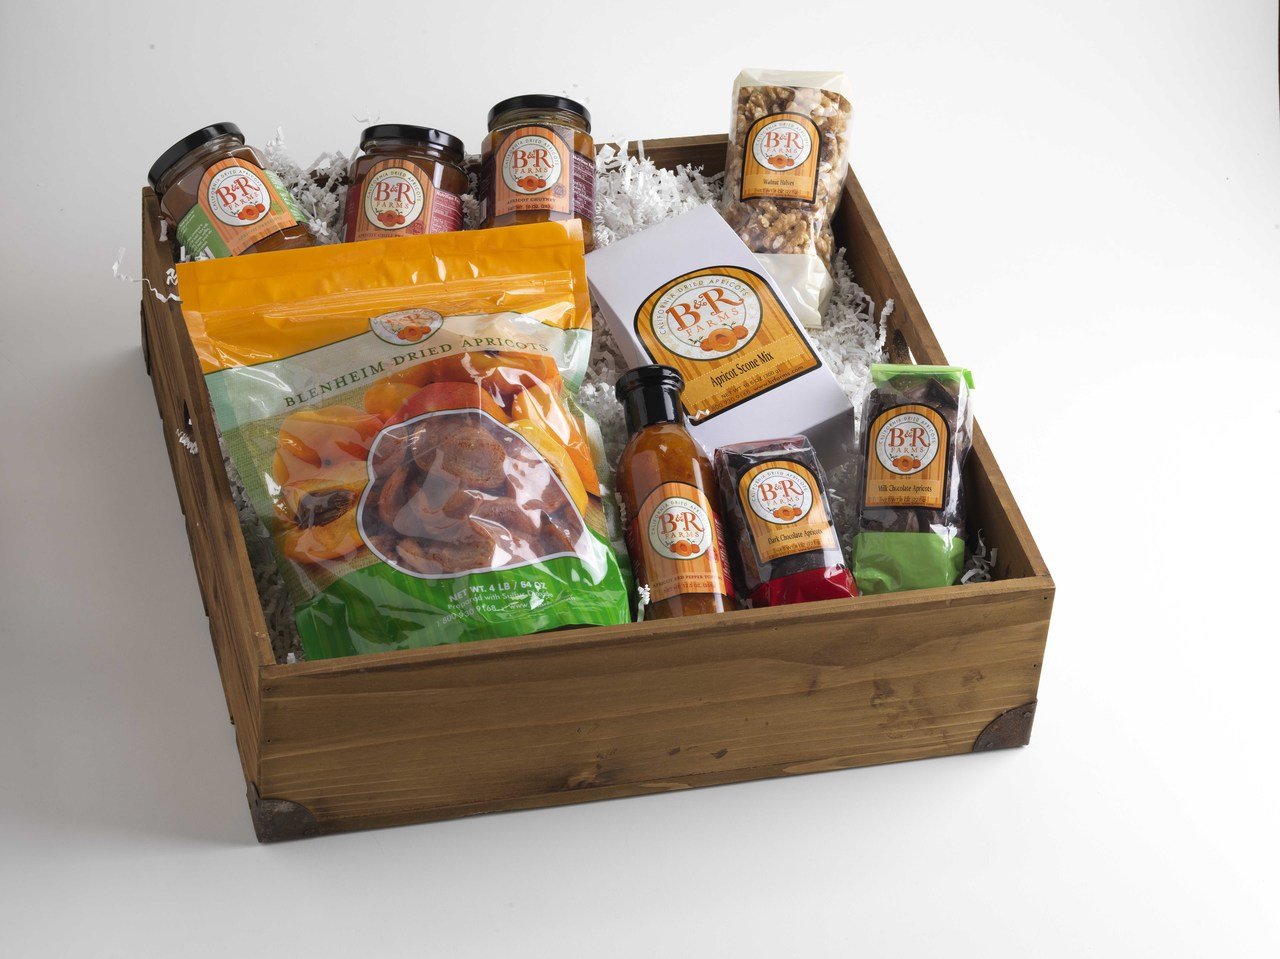 A Taste of Everything Basket- Dried Blenheim Apricots, Milk and Dark Chocolate Covered Apricot Nibbles, Dried Apricot Red Pepper Topping, Apricot Chutney, Preserves, Cinnamon Spread AND Chili Preserves and Dried Apricot Topping